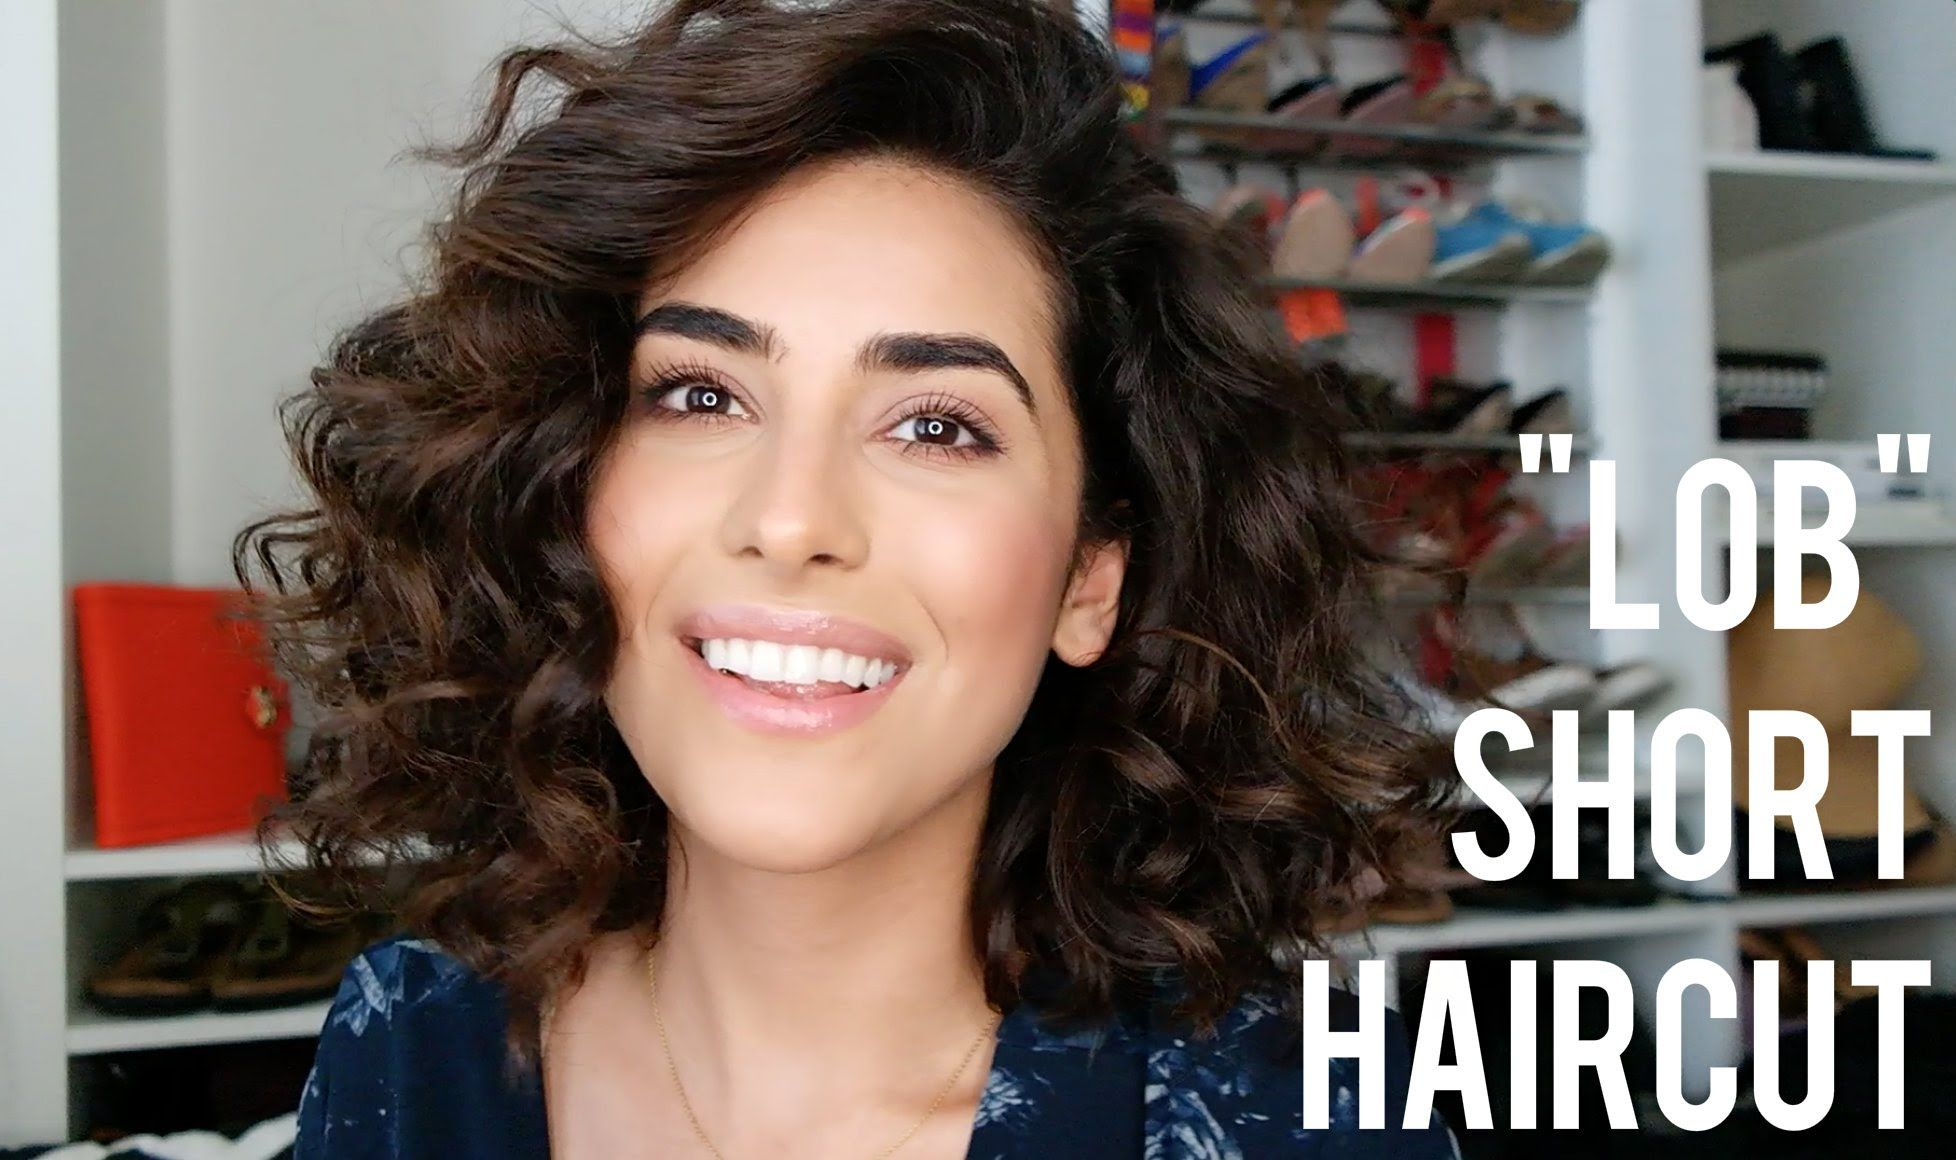 My Short Lob Haircut Tips For Styling Lob Hairstyle Lob Haircut Curly Lob